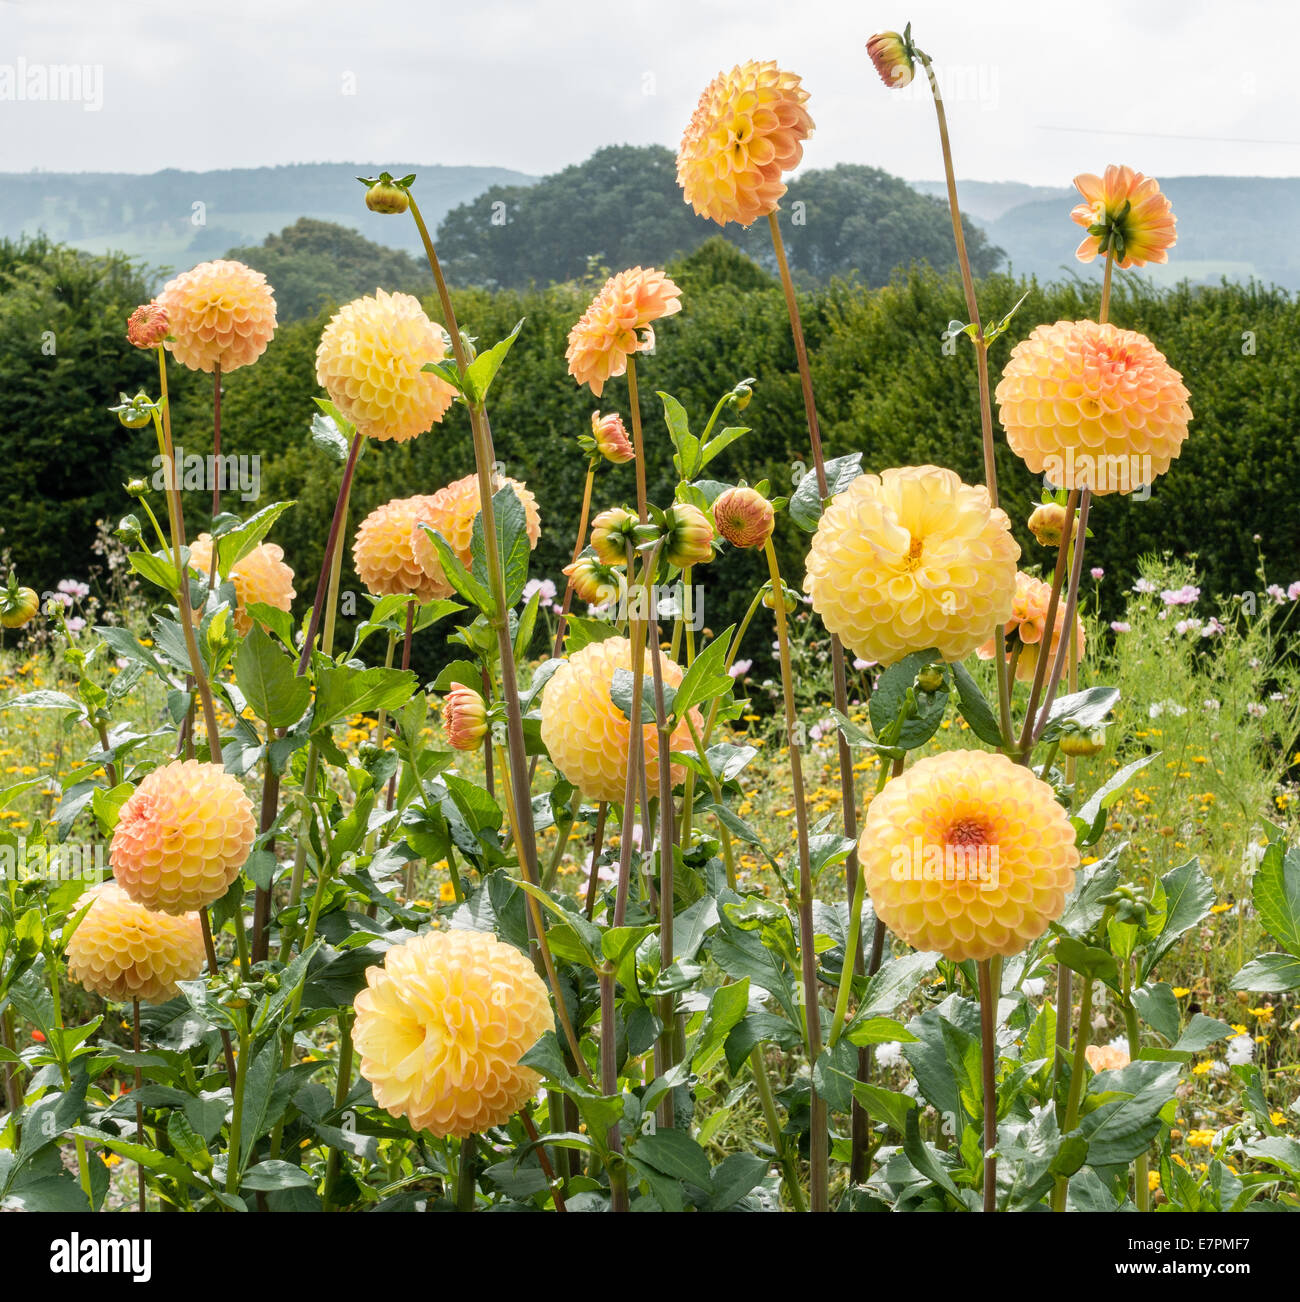 Pom pom flowers stock photos pom pom flowers stock images alamy golden yellow pom pom dahlias in an english garden stock image mightylinksfo